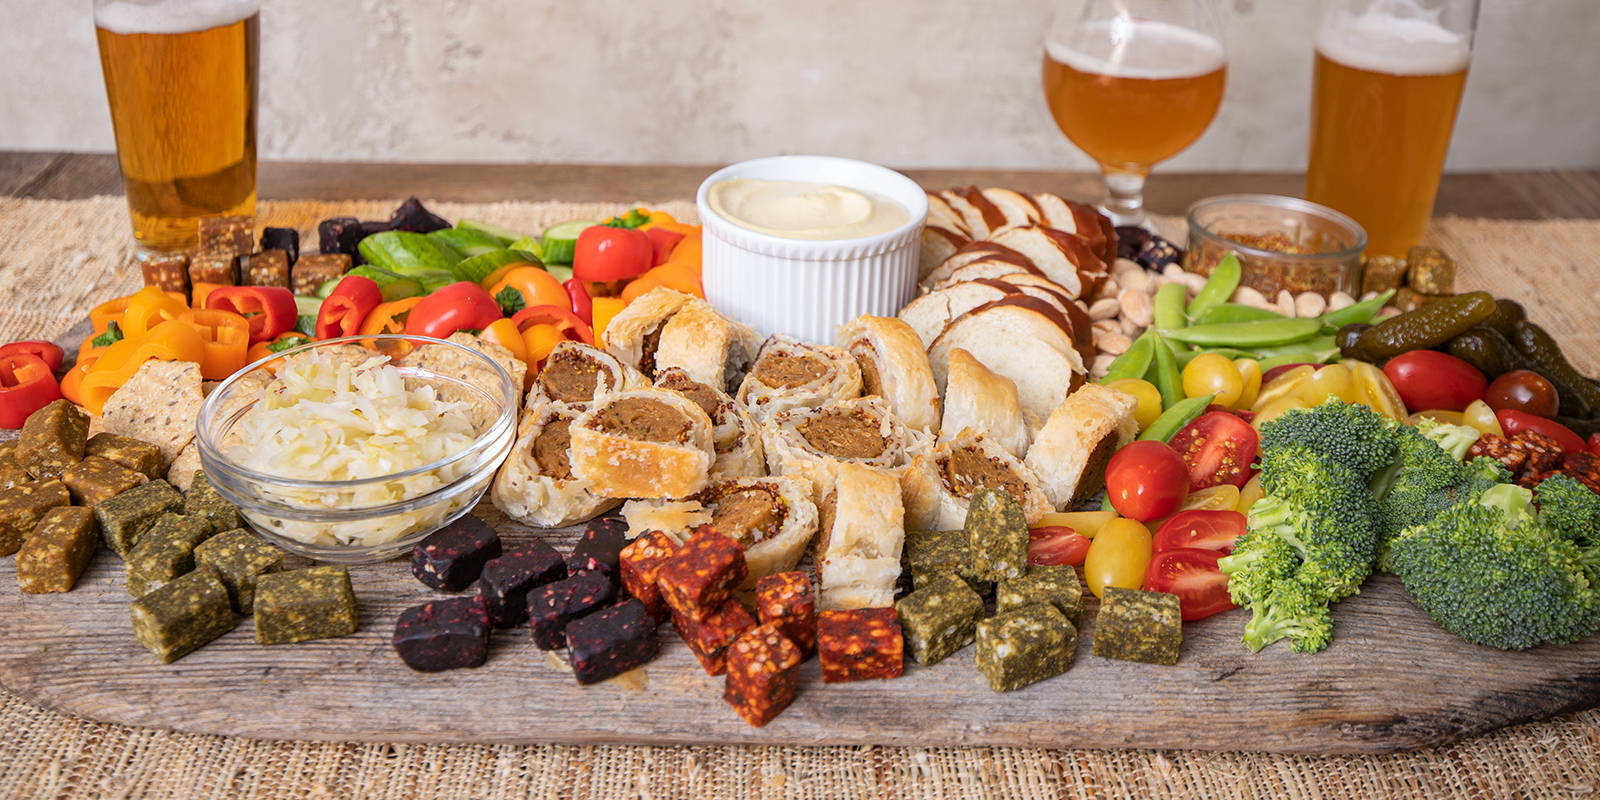 Vegan grazing board with vegetables, vegan cheese, and plant-based meat, paired with beers.